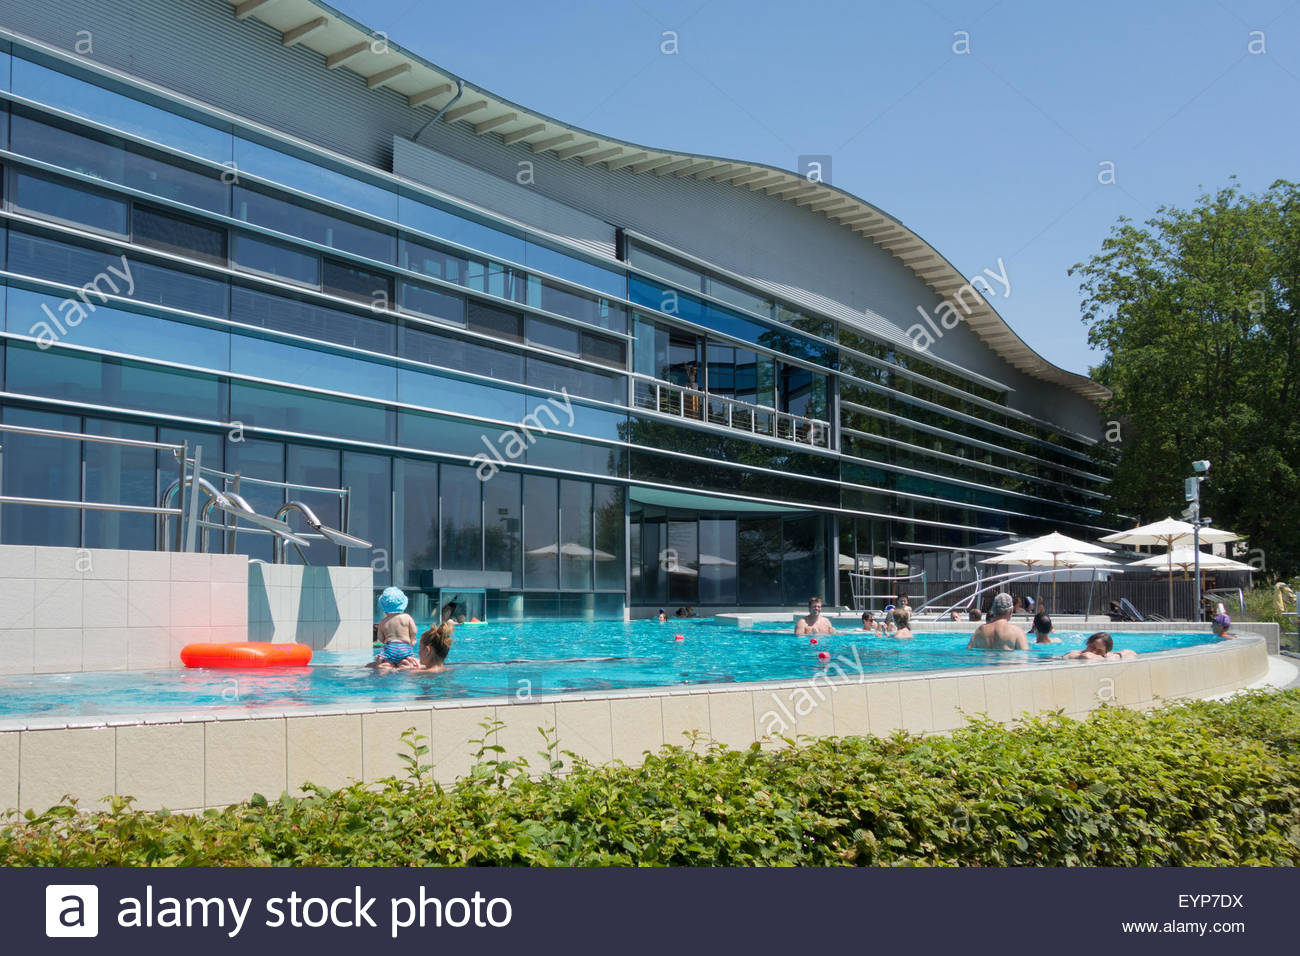 Toskana Therme Bad Schandau Saxony, Saxony-Anhalt and Thuringia, Therme Germany Stock Photos & Therme Germany Stock Images - Alamy